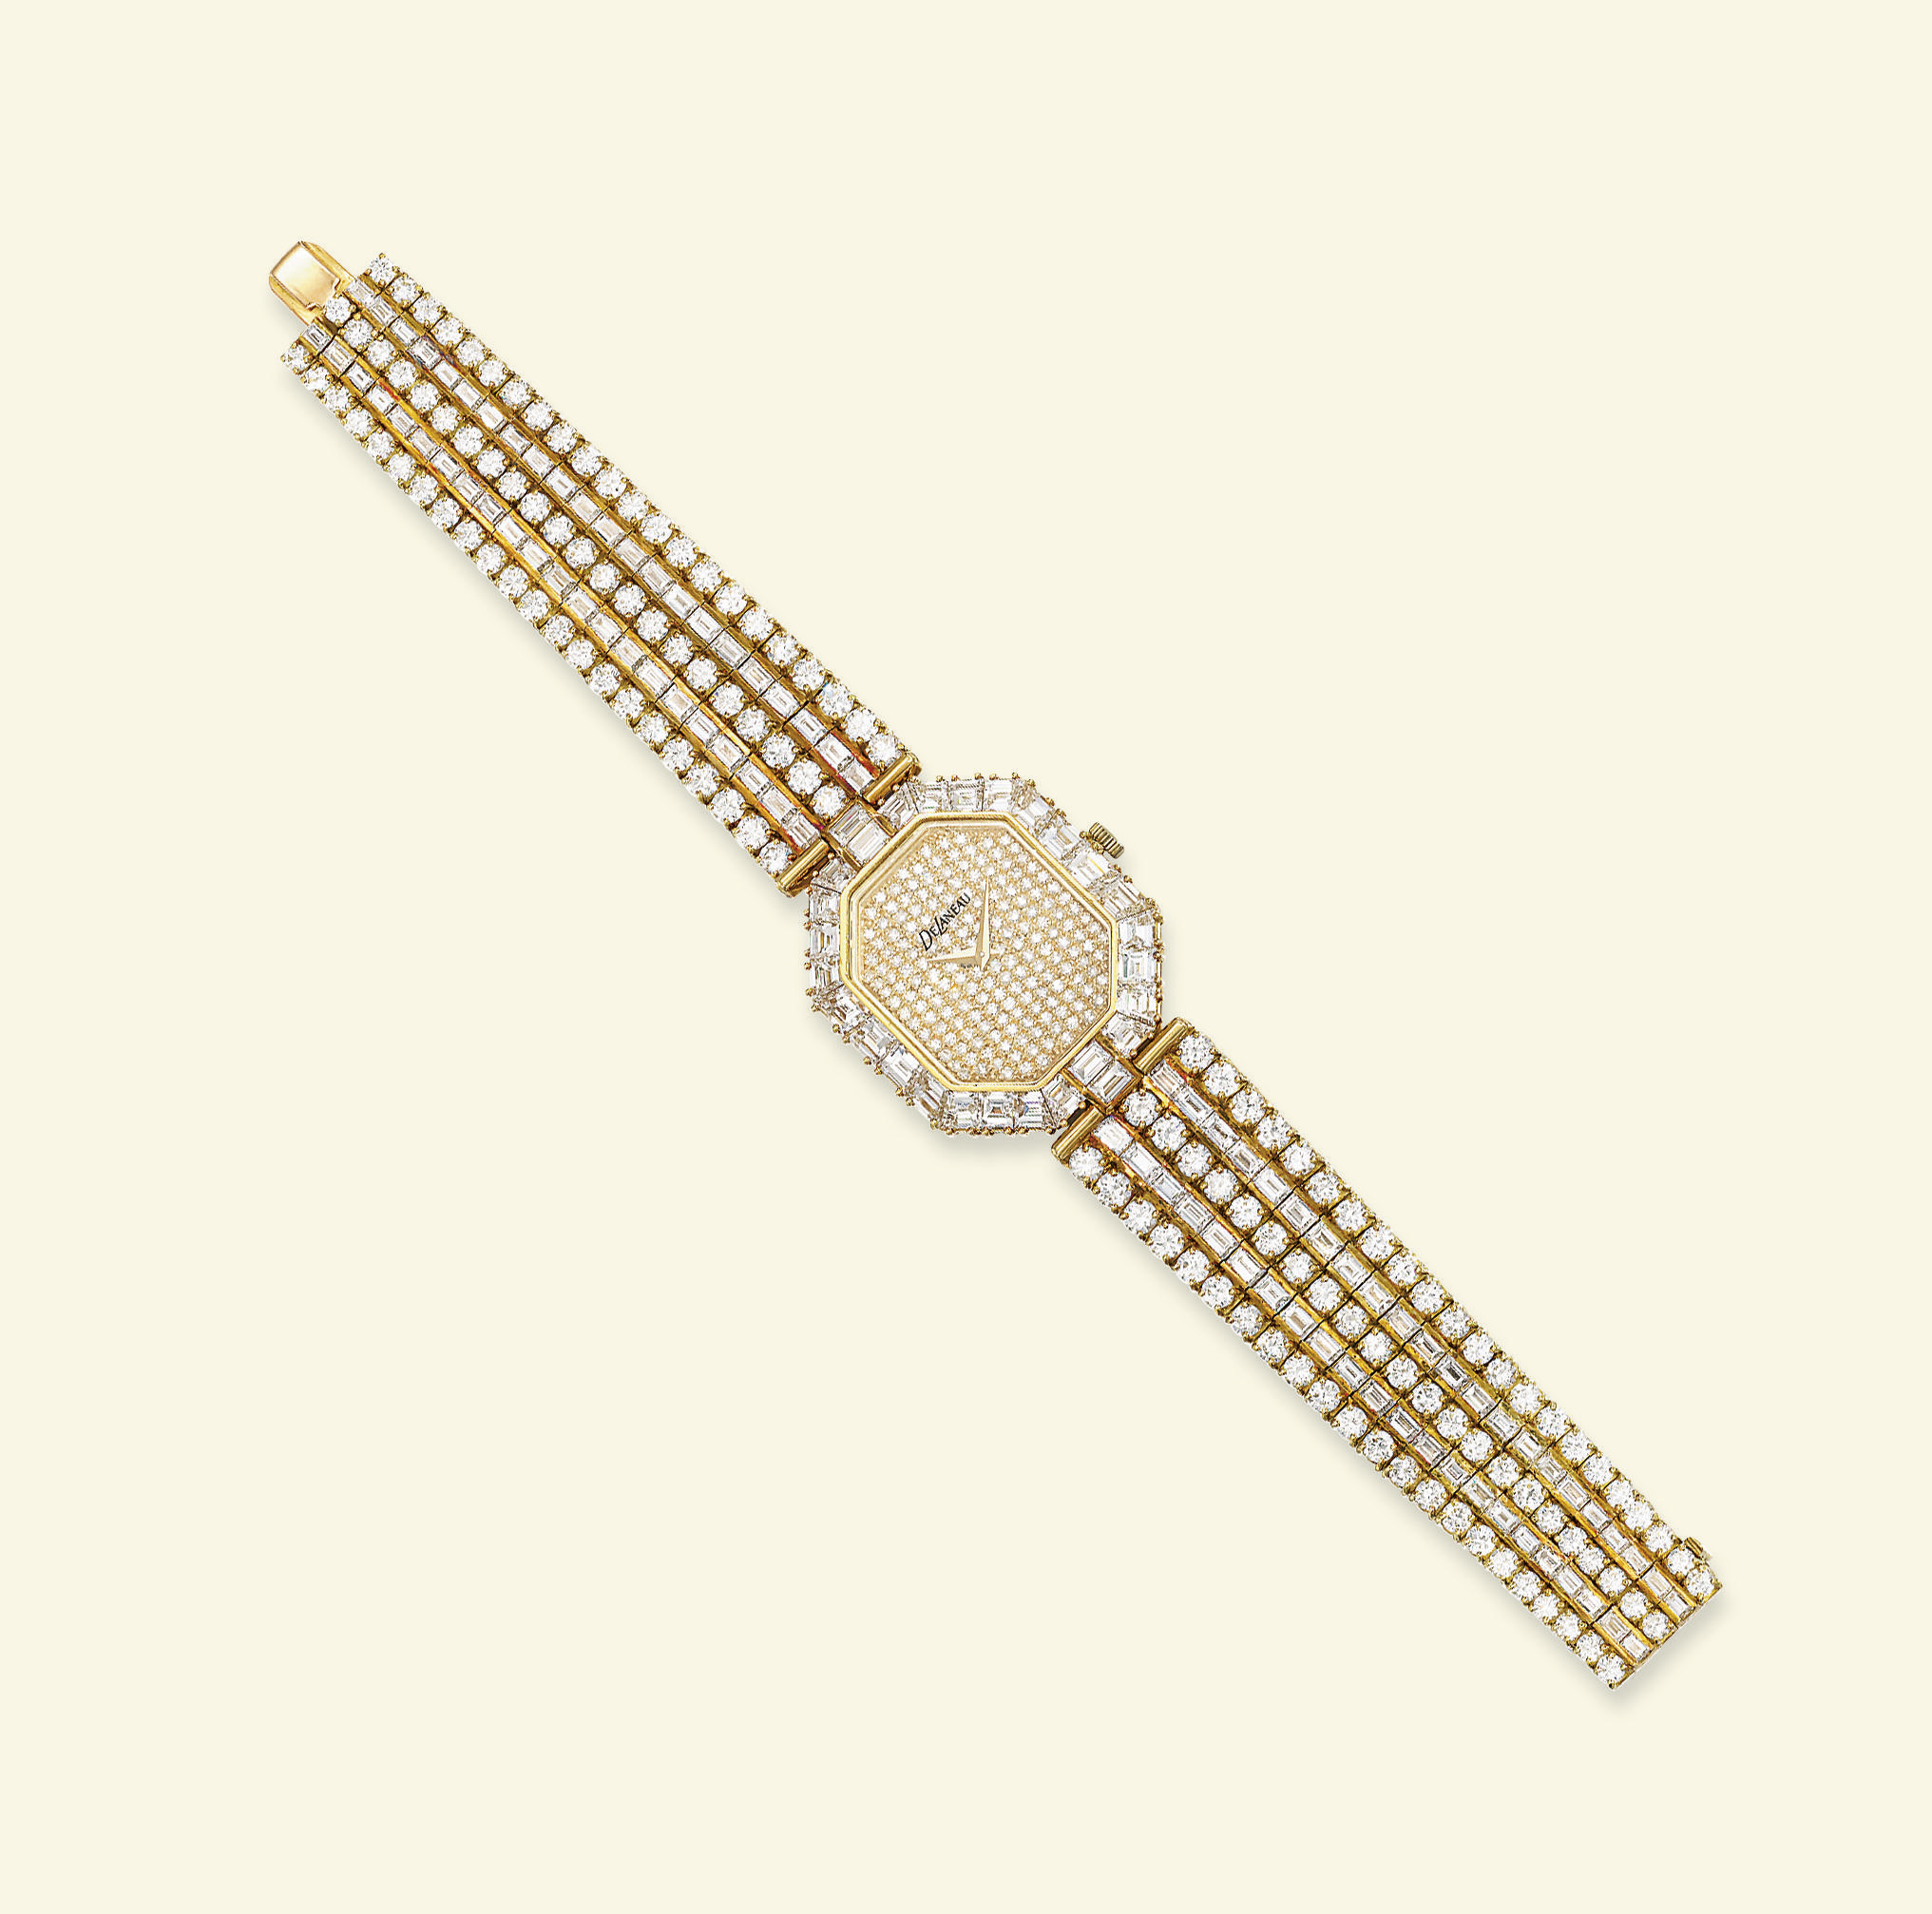 A LADY'S DIAMOND WRISTWATCH, BY DELANEAU